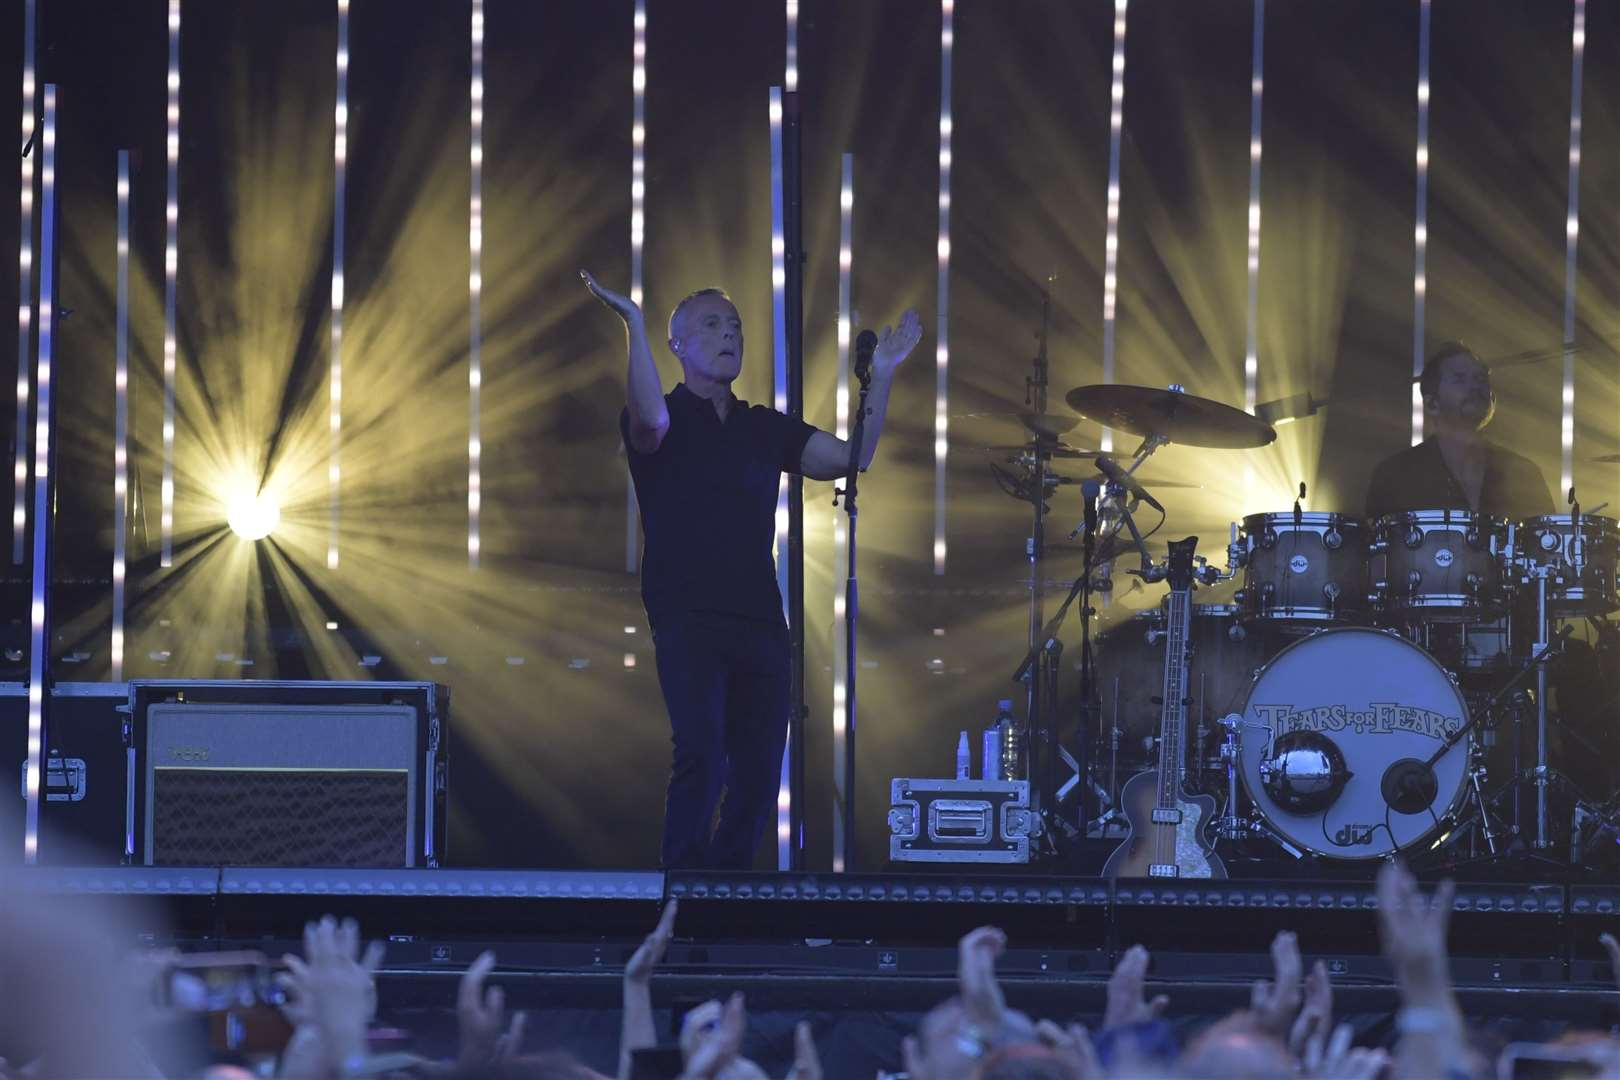 Tears for Fears' Curt Smith at The Spitfire Ground Picture: Barry Goodwin